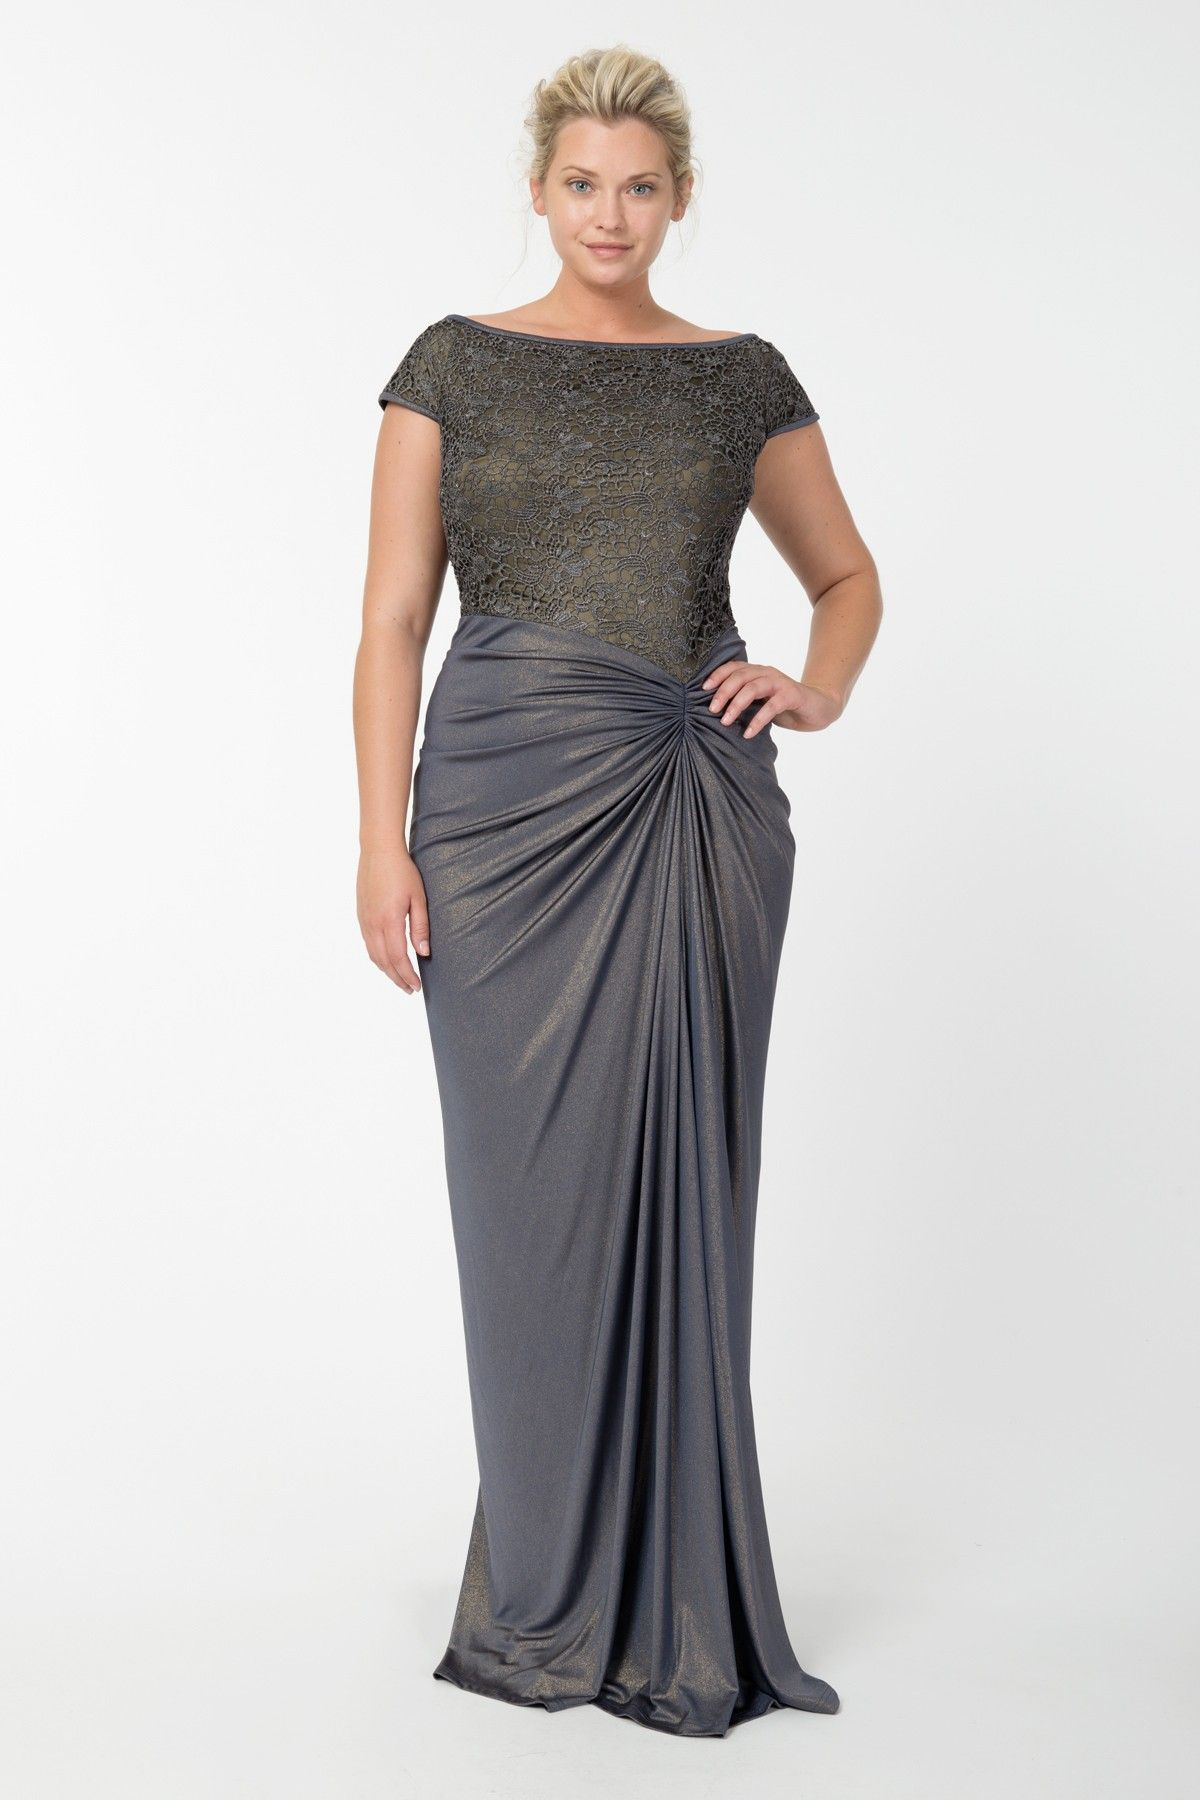 20 Plus Size Evening Dresses to Look Like Queen | Fashionably Modest ...